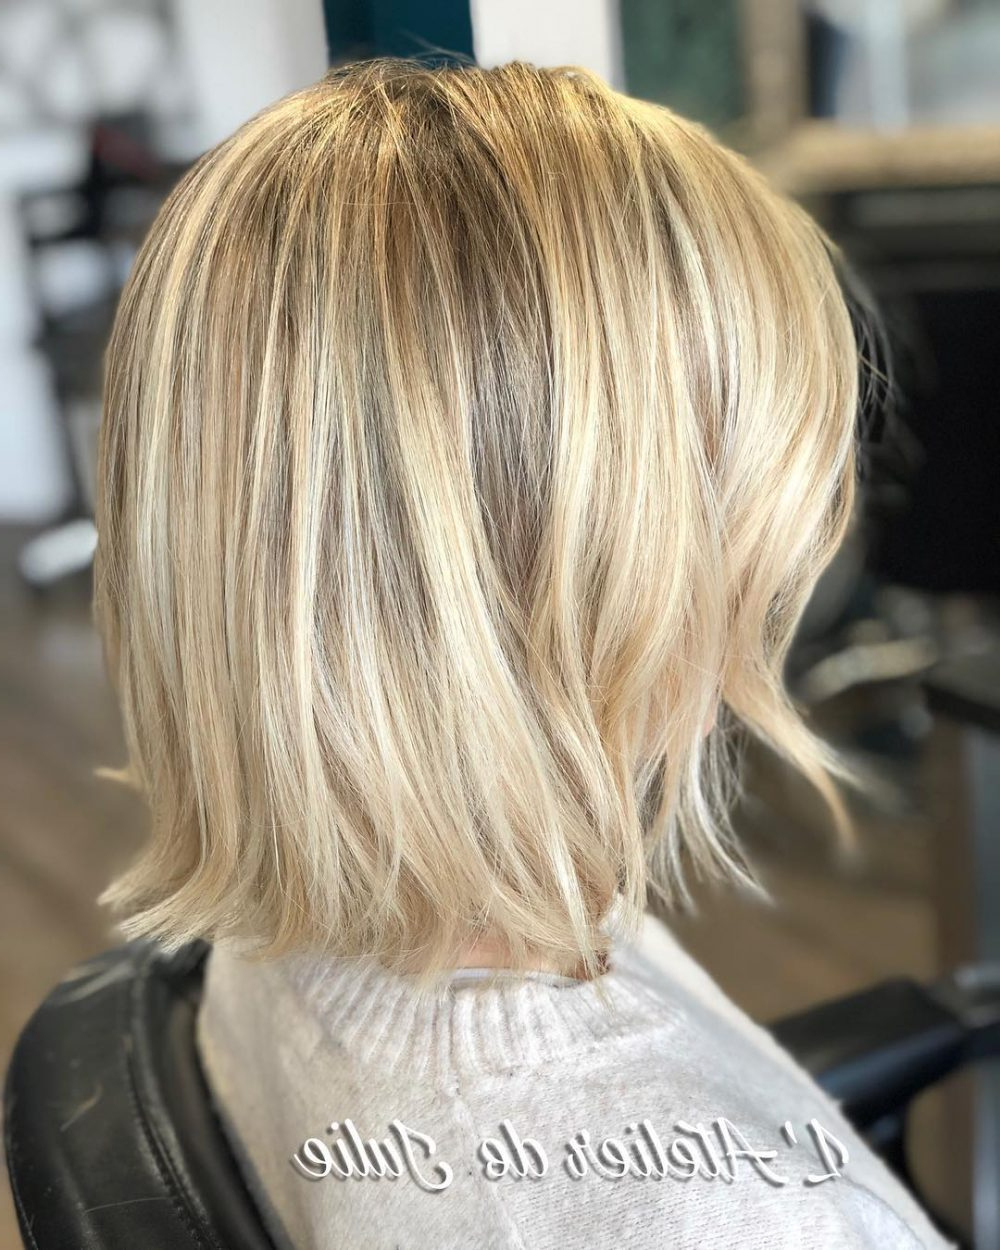 34 Perfect Short Haircuts And Hairstyles For Thin Hair (2018) Pertaining To Cute Short Haircuts For Thin Straight Hair (View 2 of 25)